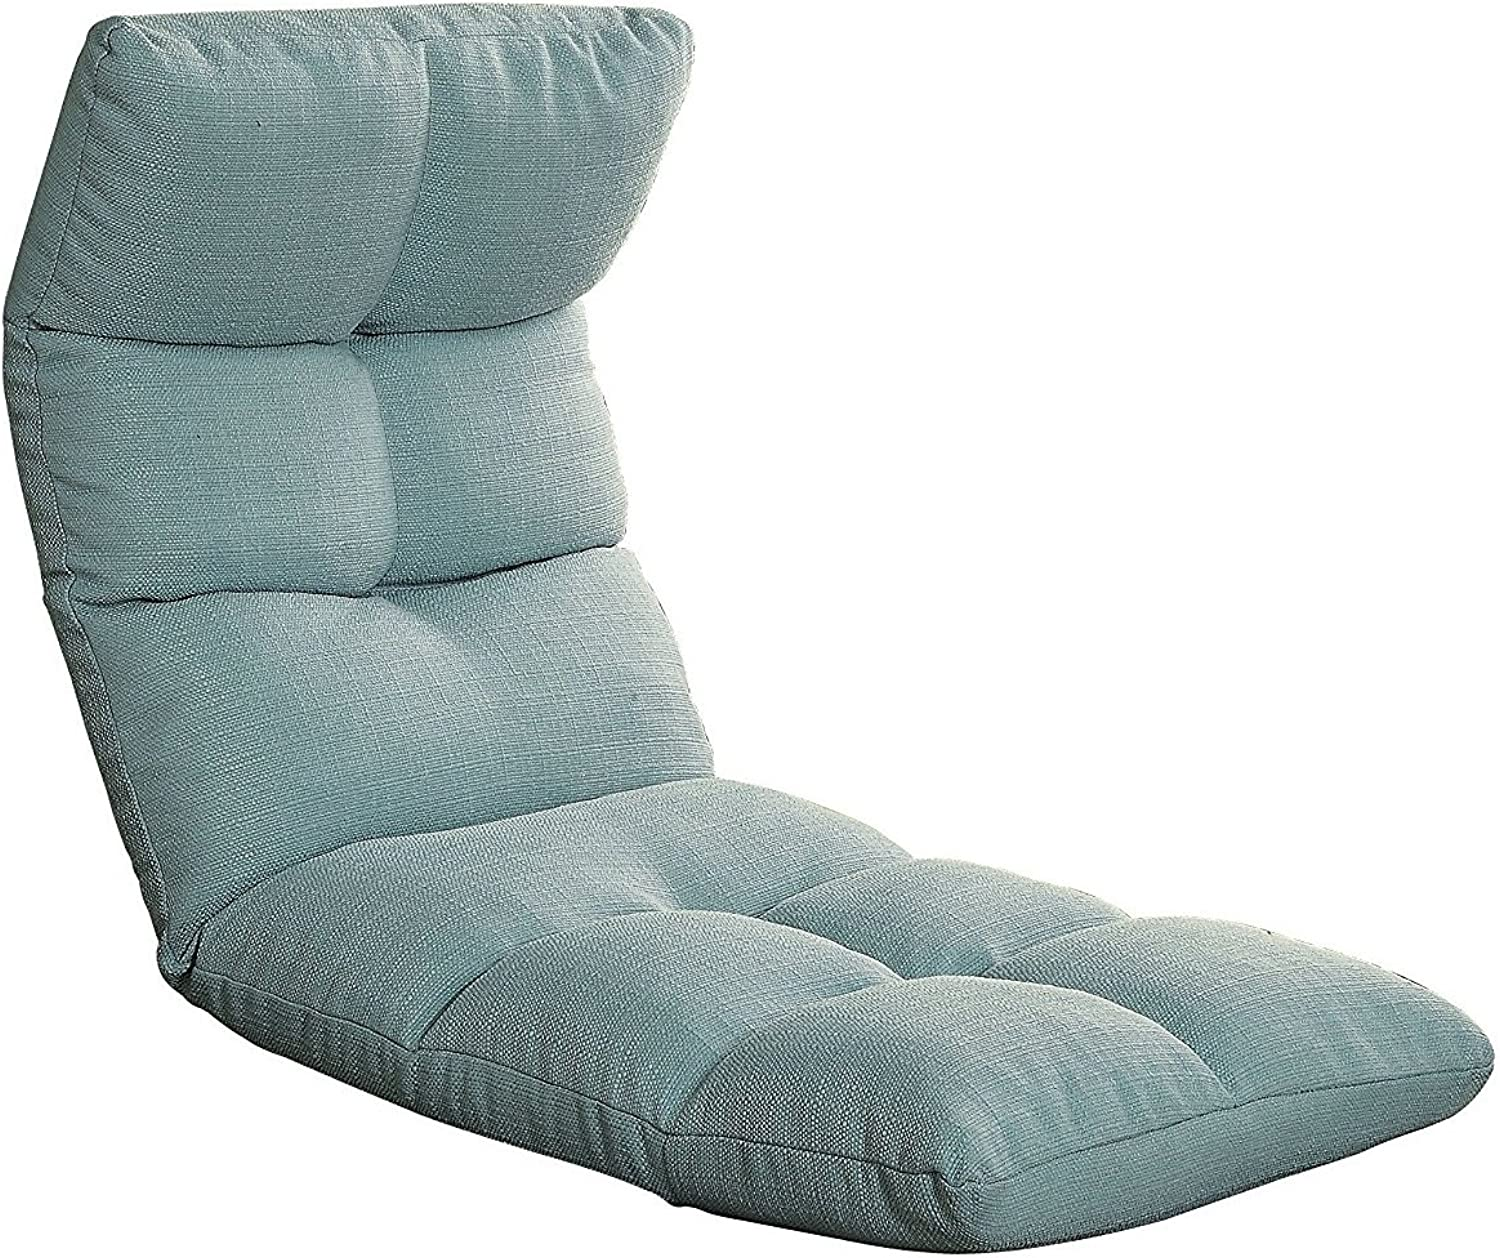 Major-Q Congreenible Youth Gaming Chair for Living Room Game Room Bedroom, Teal Bed  51 x 20 x 4, Seat  33.46  x 20  x 33.46